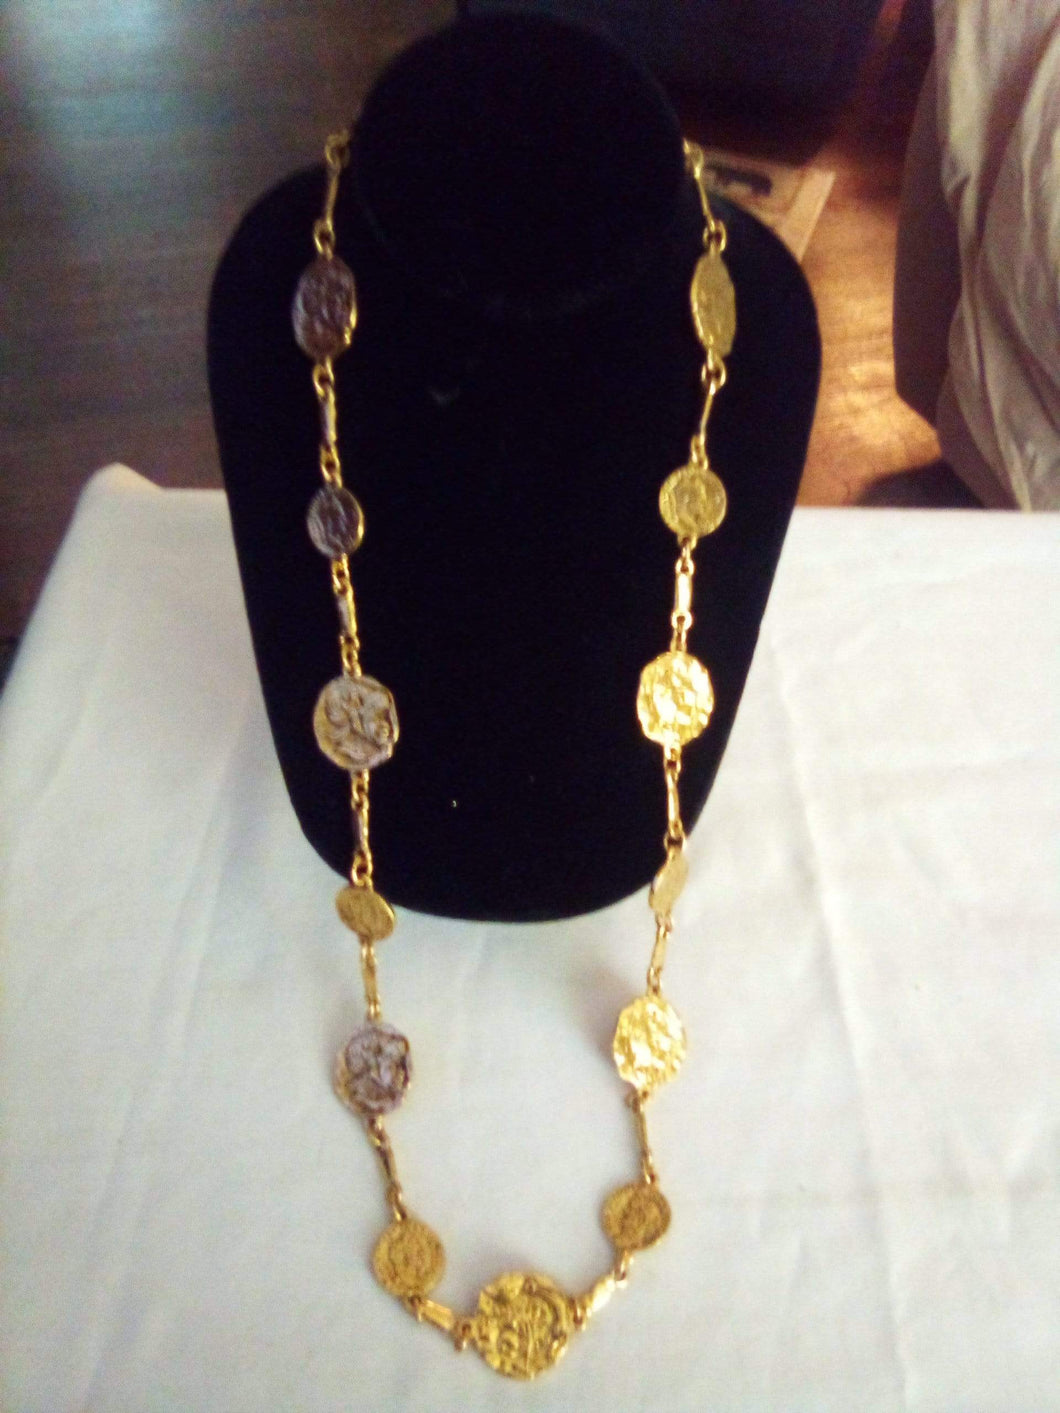 Gold tone decorative necklace - B&P'sringsnthings